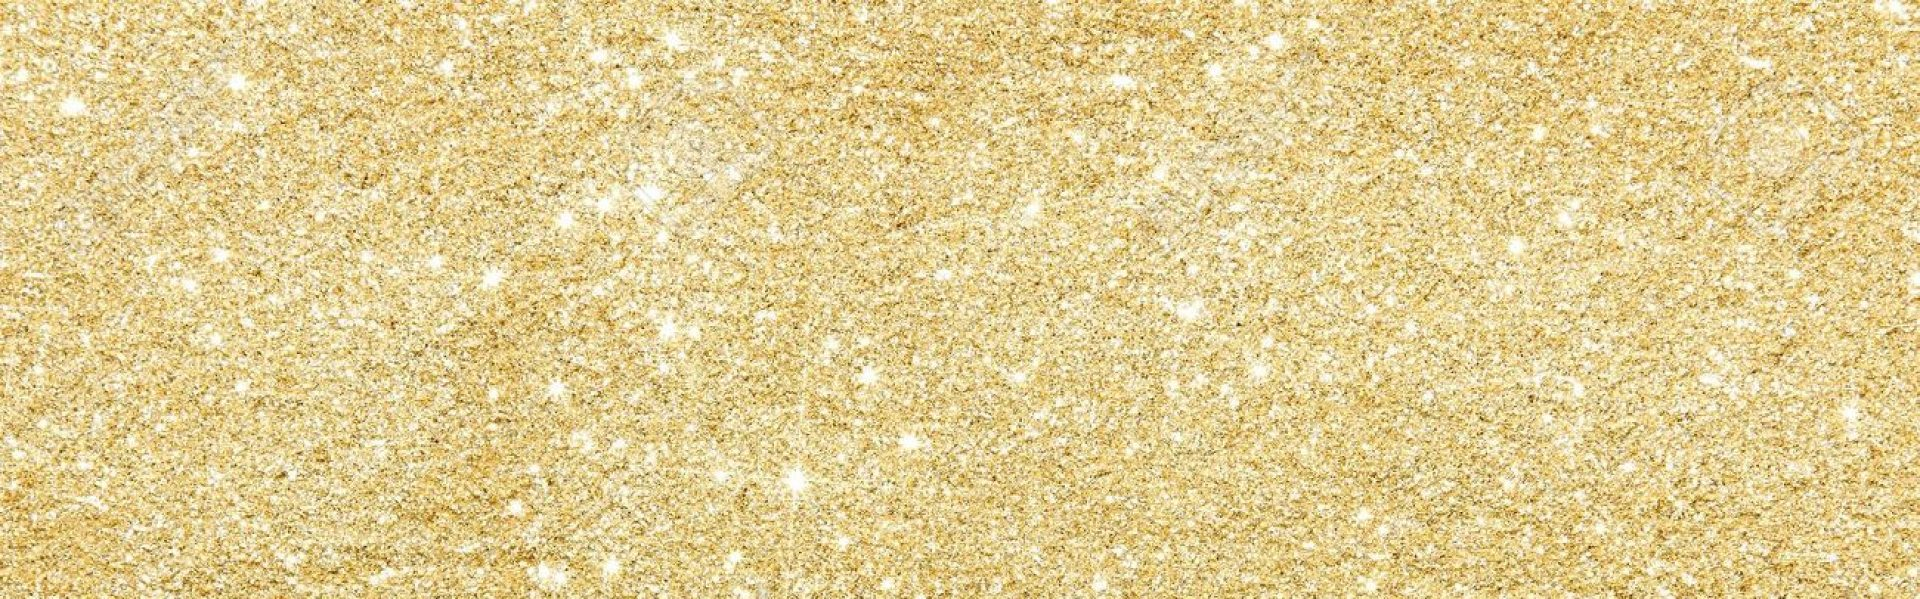 cropped-Gold-Glitter-Texture-6.jpg